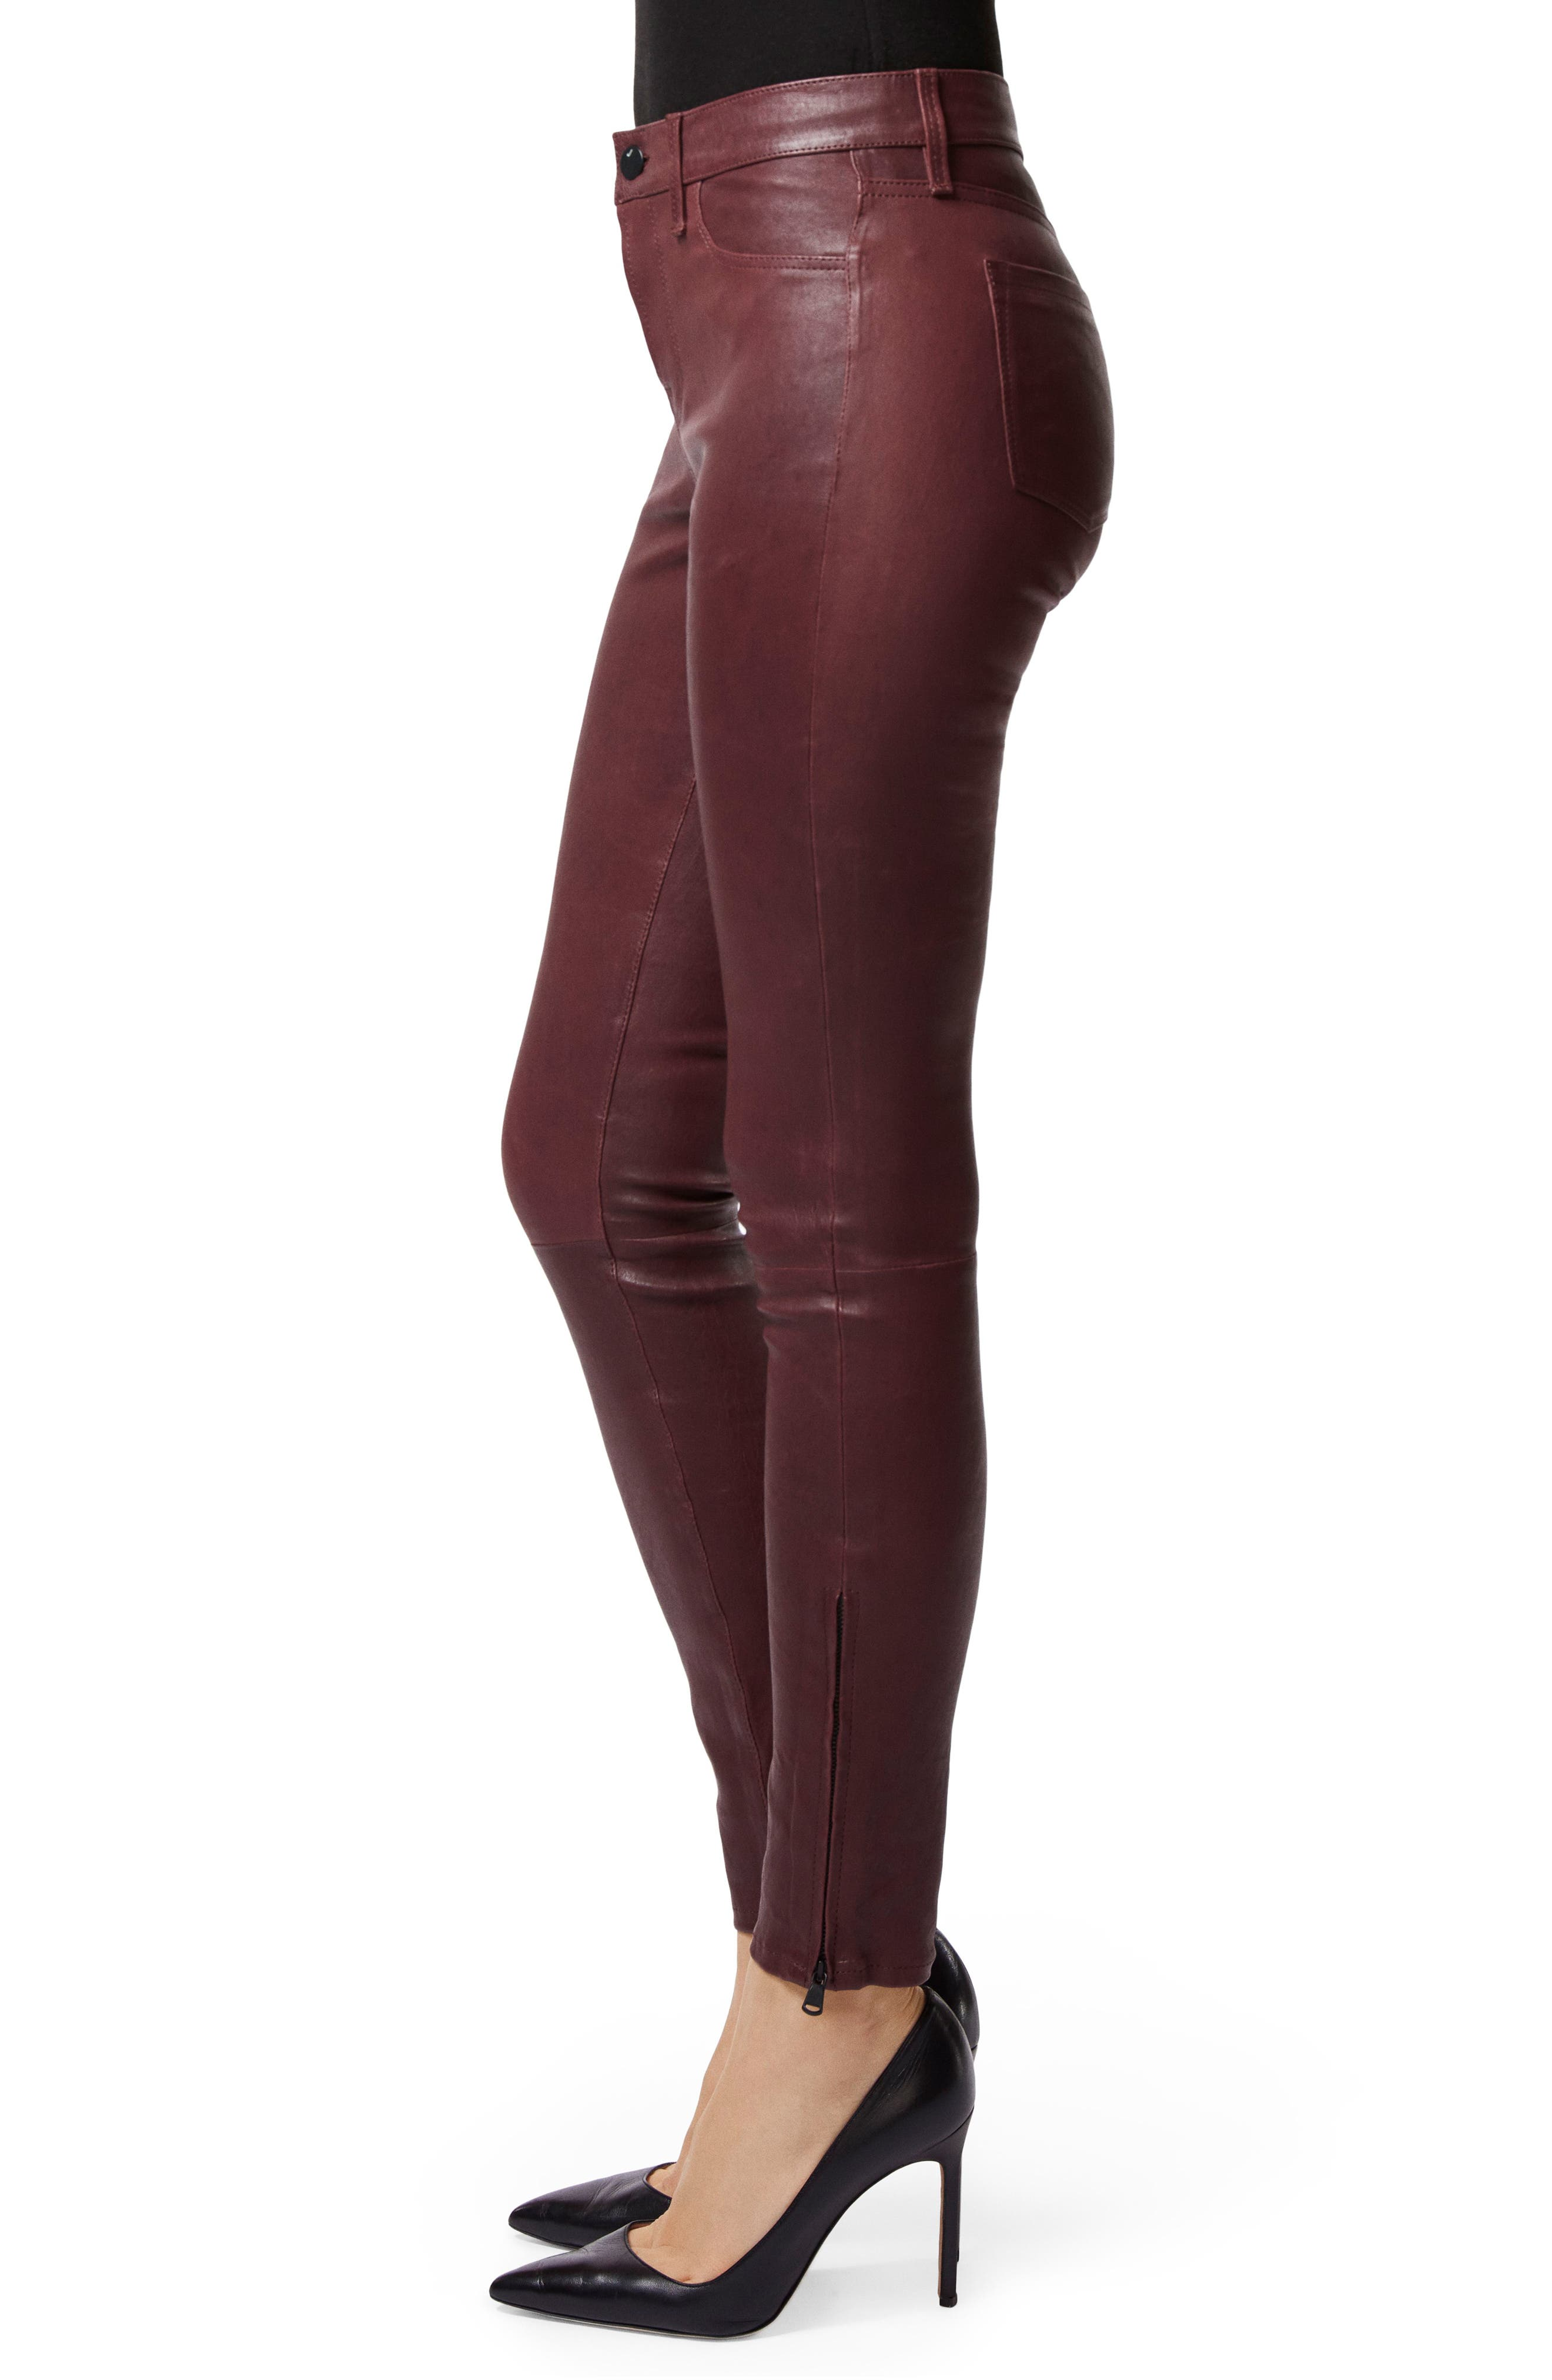 '8001' Lambskin Leather Pants,                             Alternate thumbnail 3, color,                             510